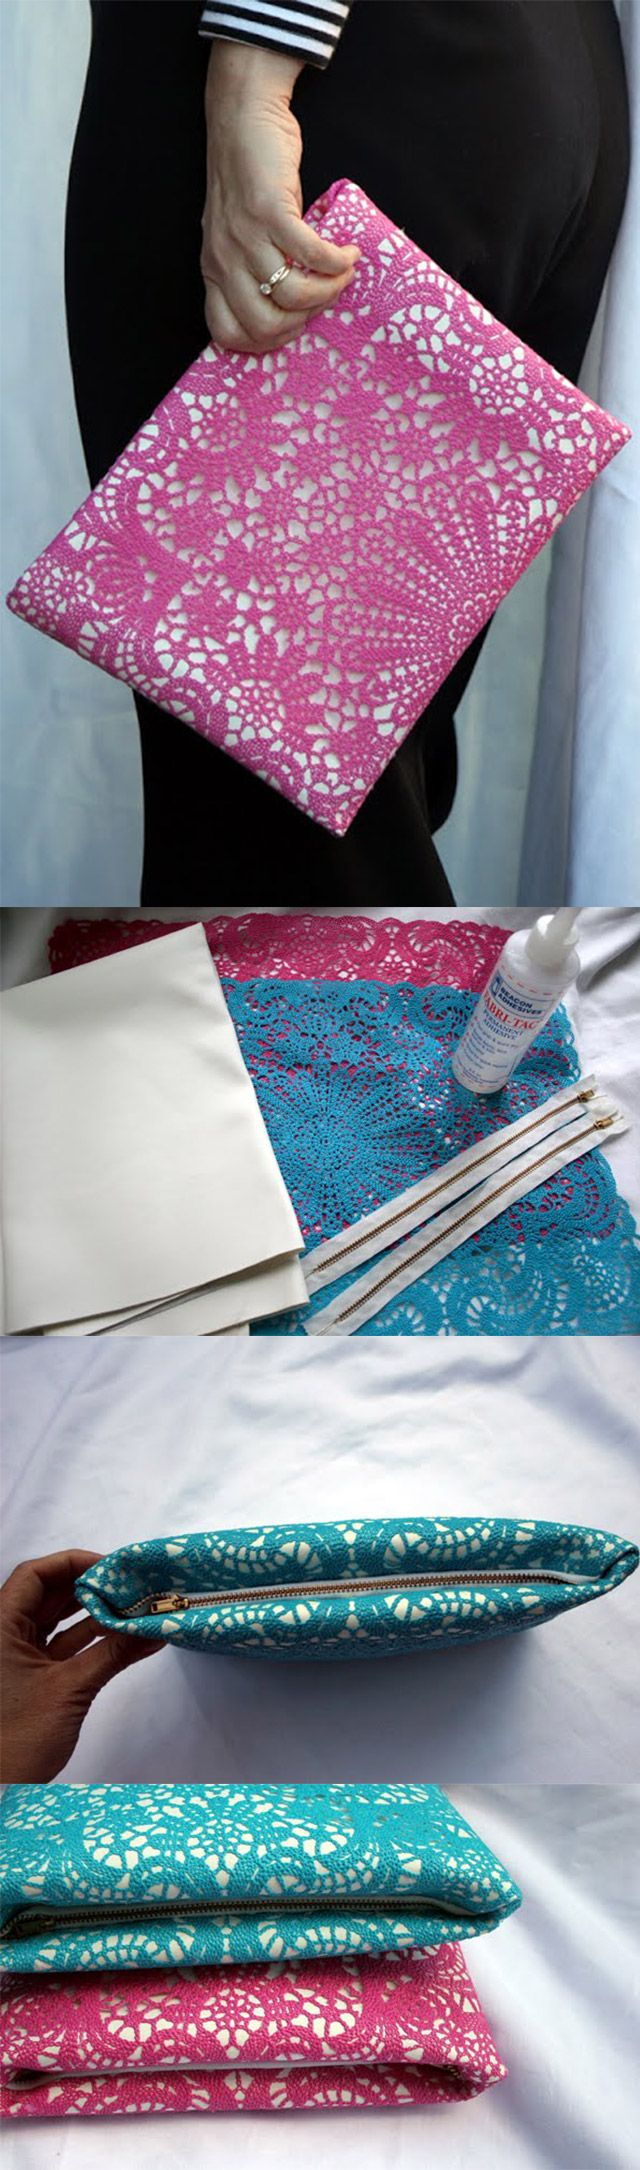 Interesting Craft Ideas With Lace - Fashion Diva Design... Lace clutch diy ♥✤ | Keep the Glamour | BeStayBeautiful Daily update on my blog: iliketodecorate.com